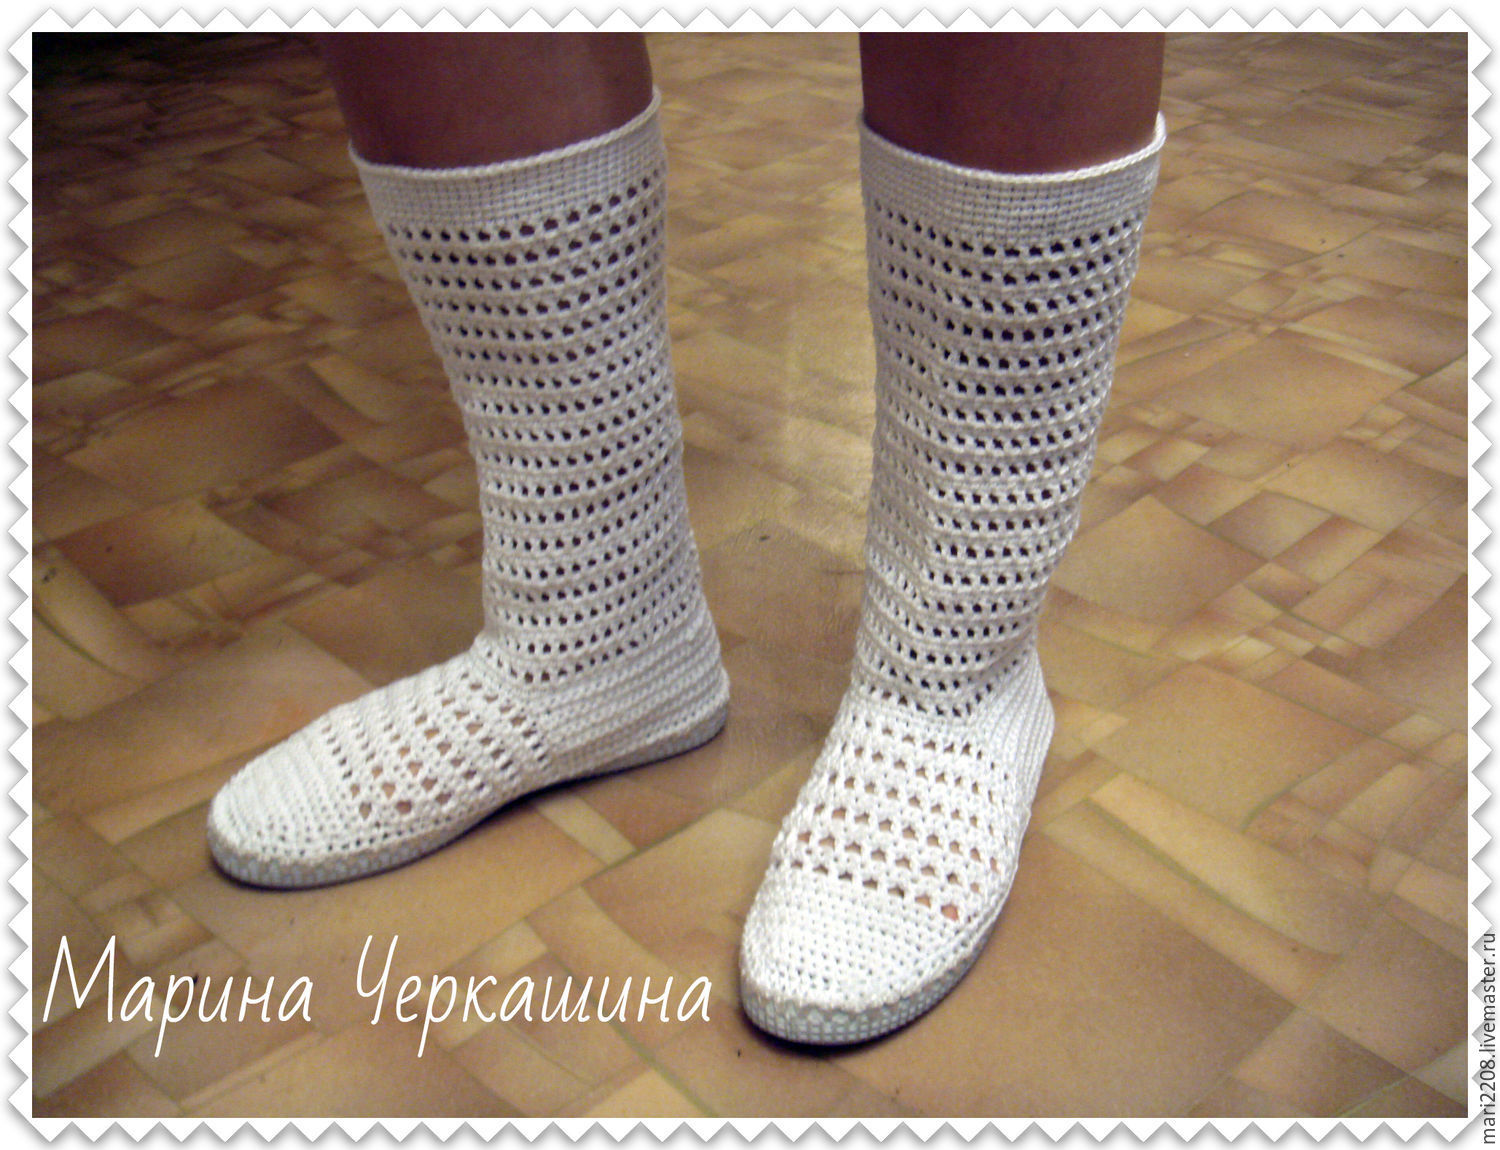 Knitted shoes. Knitted boots 'Summer', High Boots, Irkutsk,  Фото №1